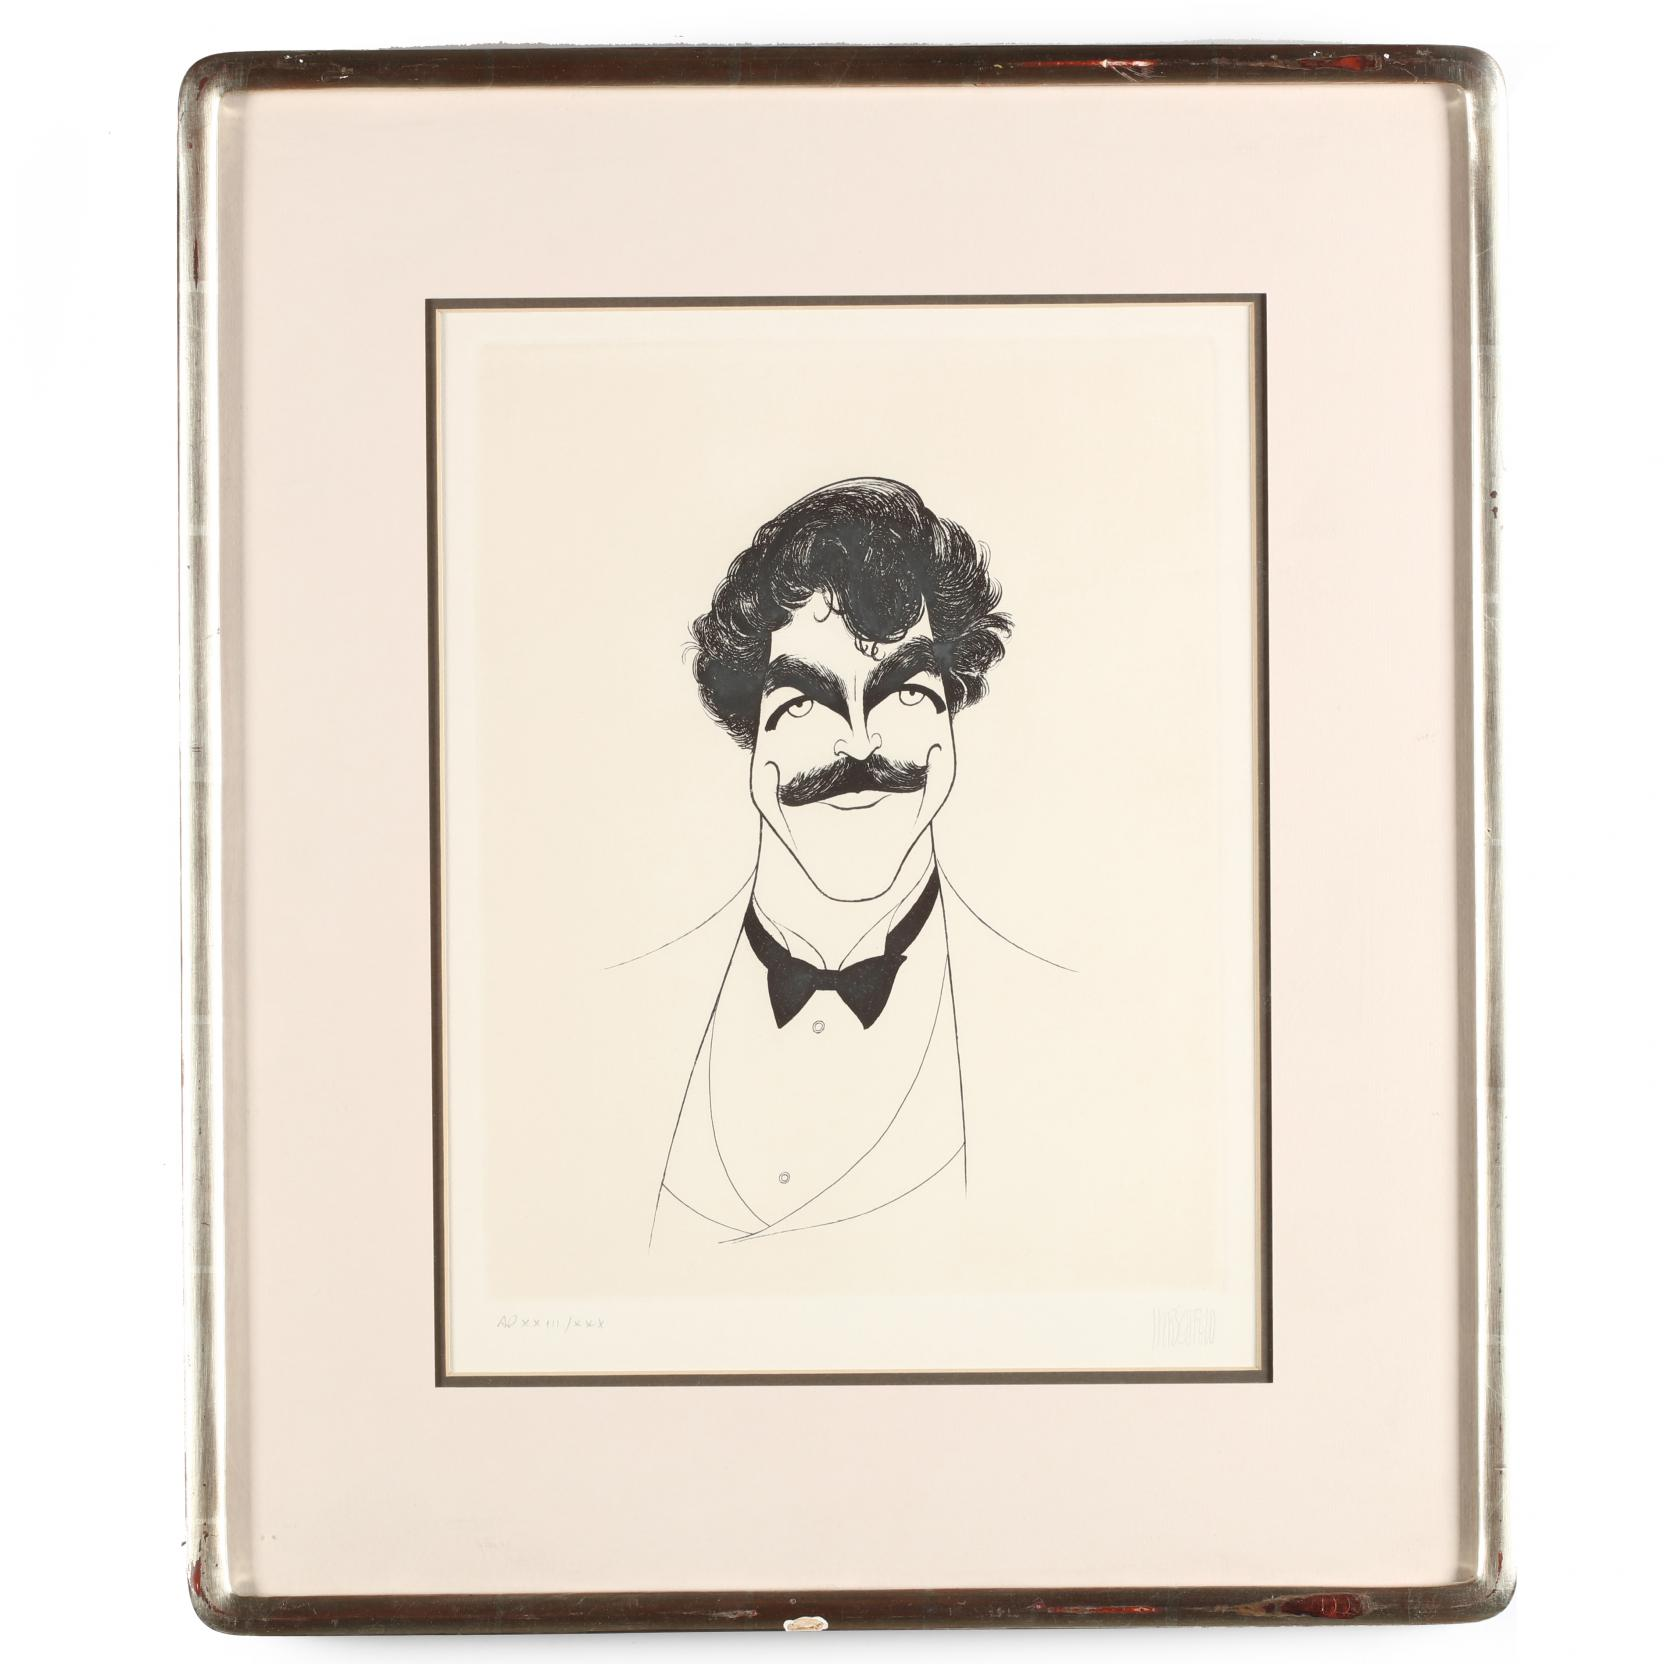 al-hirschfeld-ny-1903-2003-i-tom-selleck-i